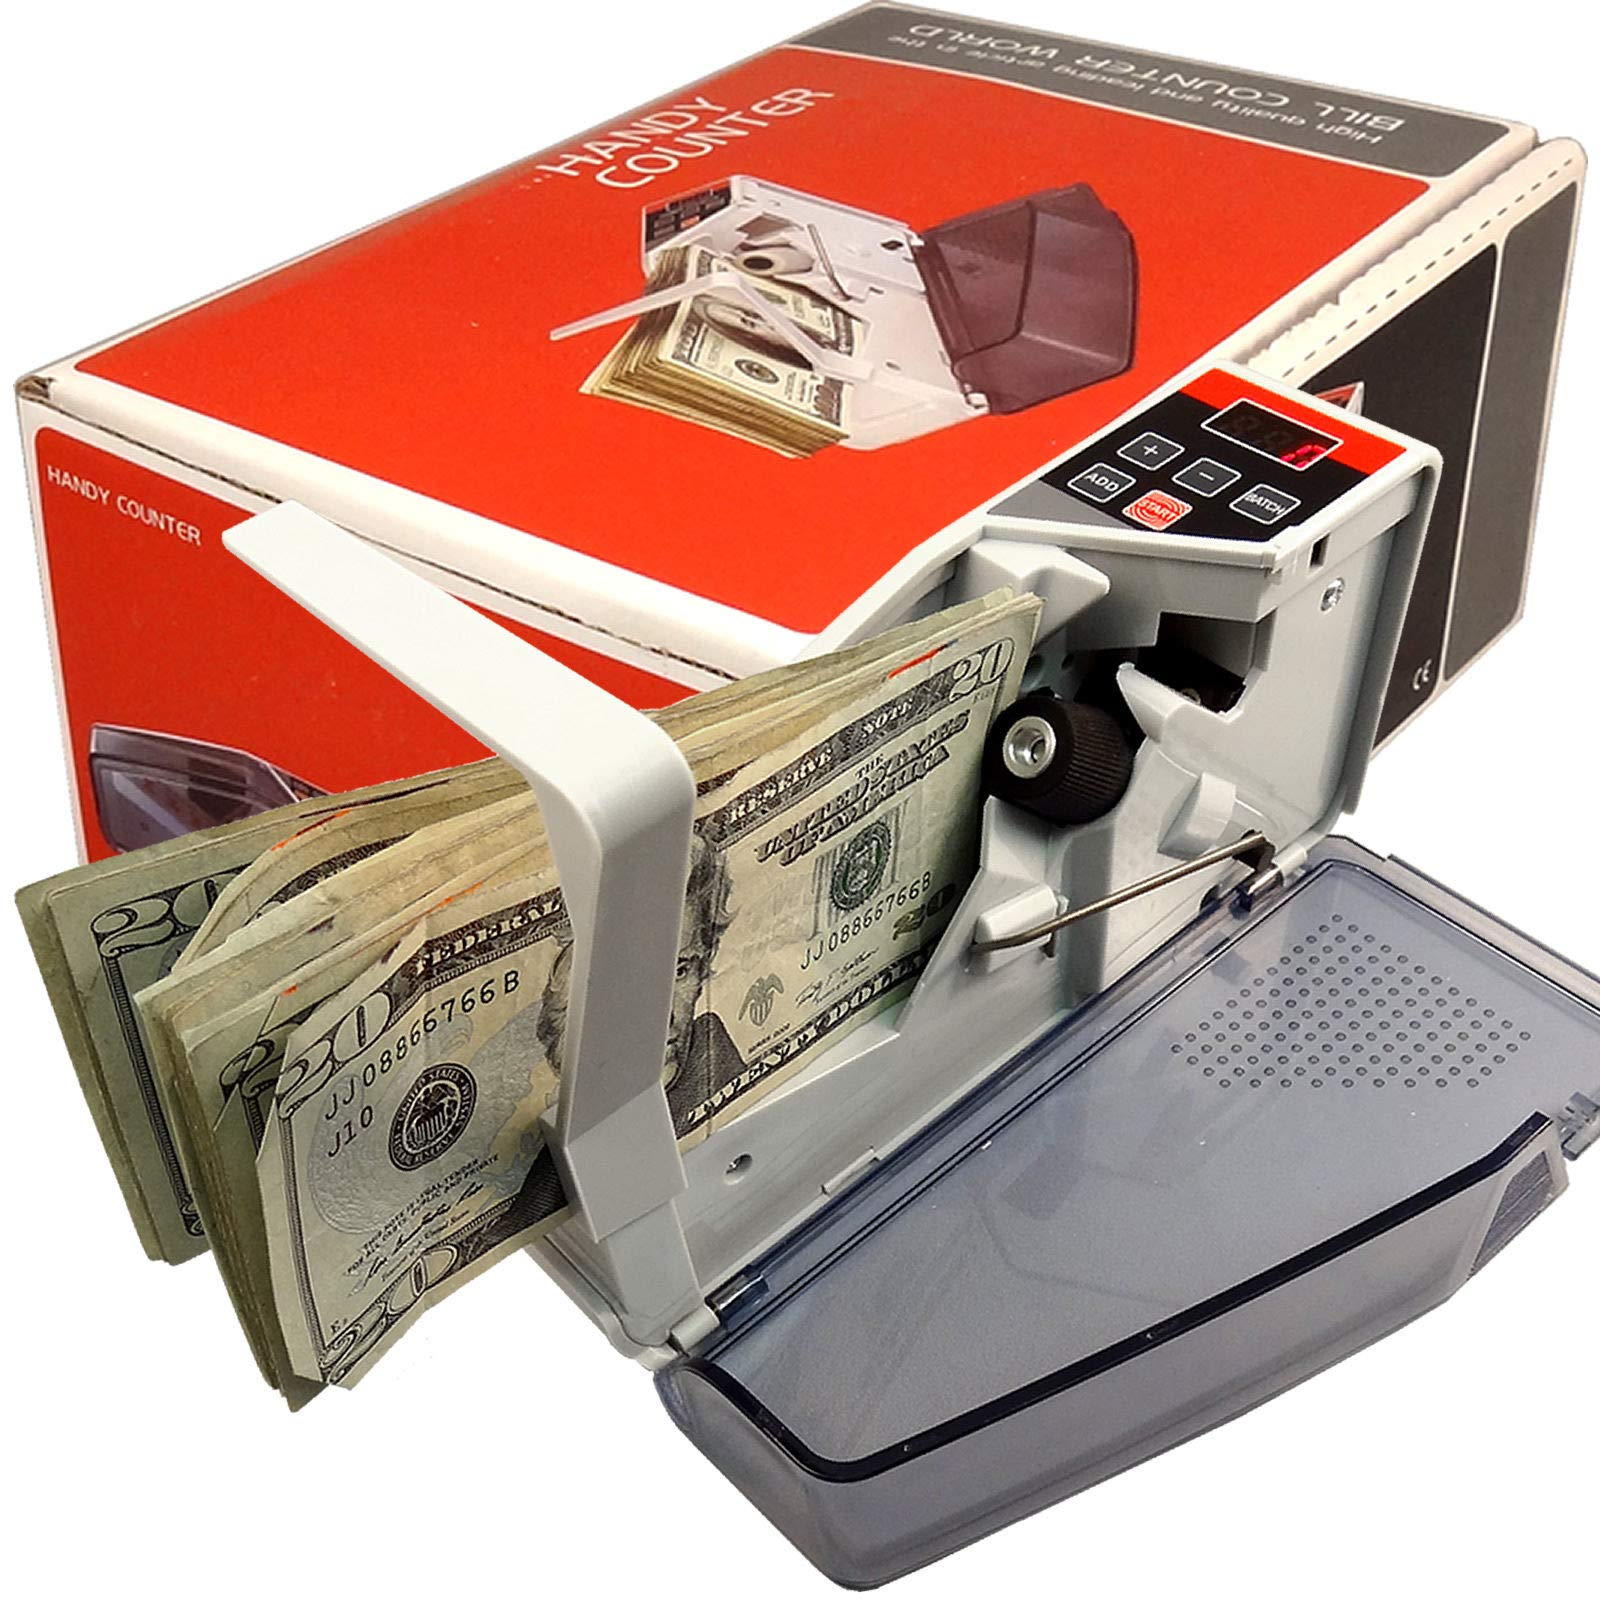 Henry Tech Counting Cash Handy Counter Portable Mini Currency Machine Money Bill